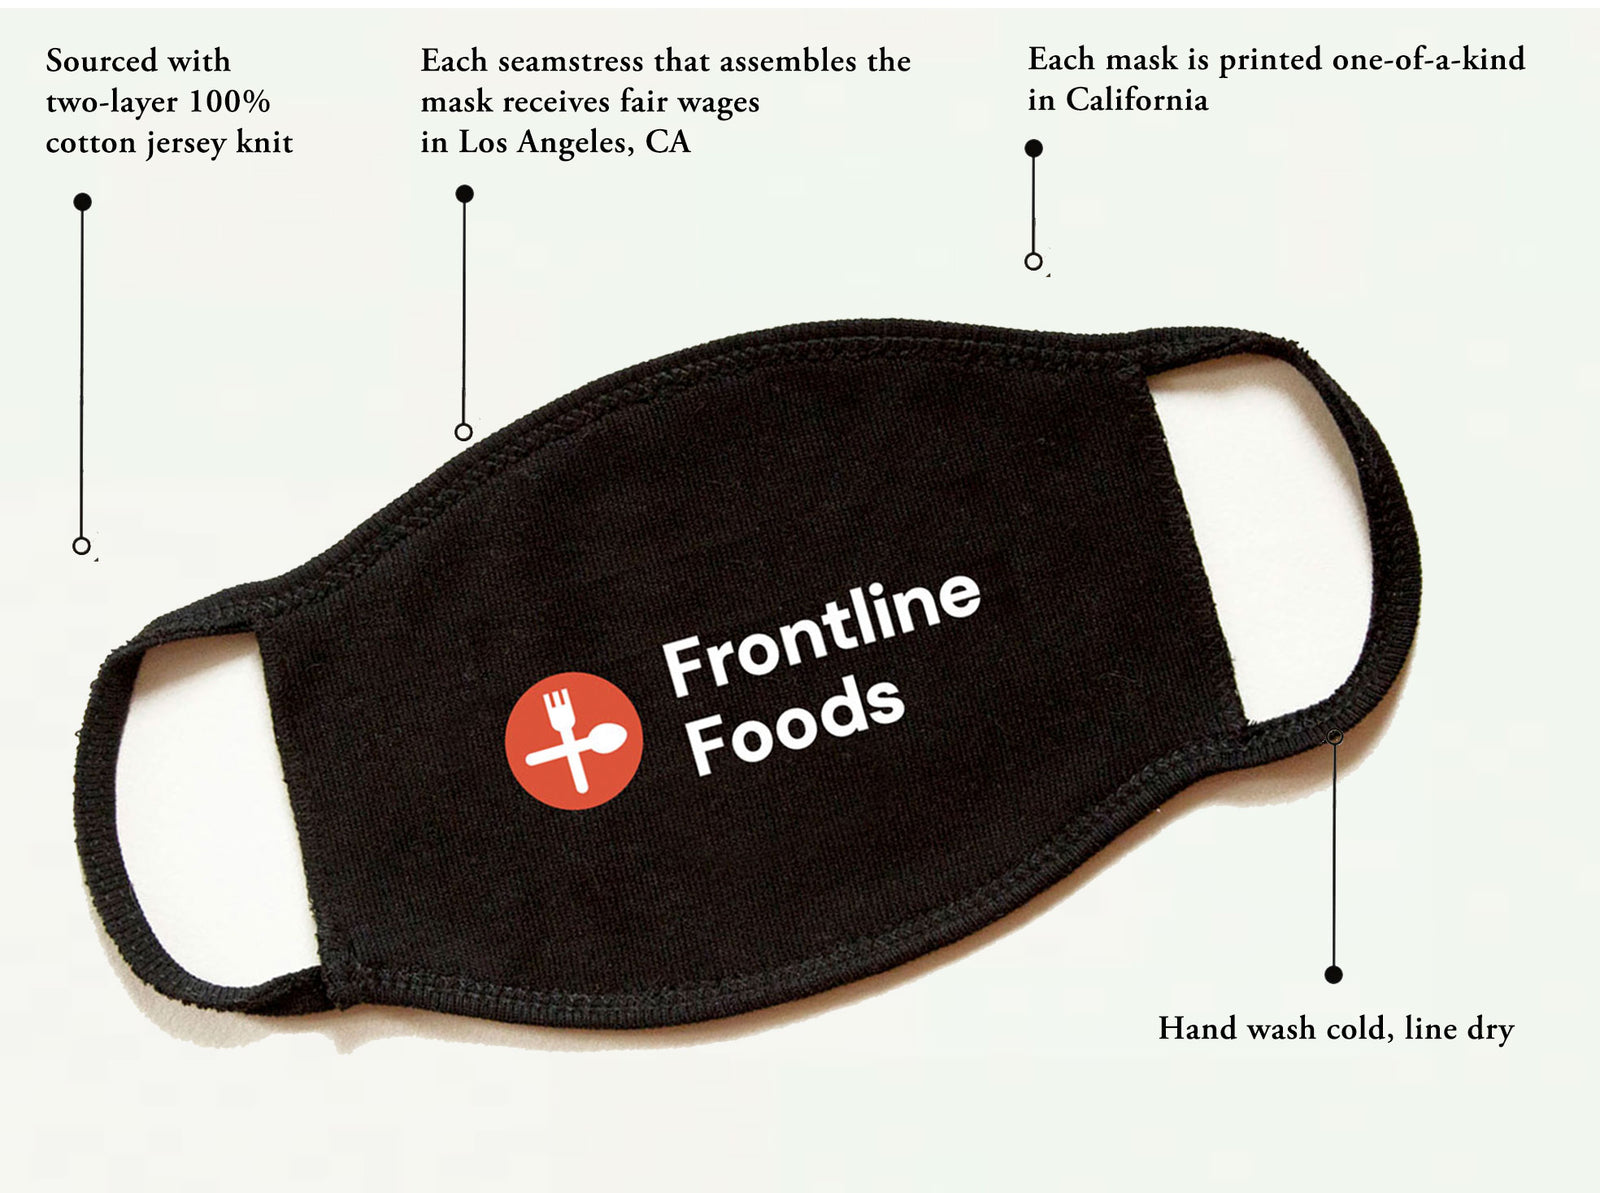 3-Pack Frontline Foods® Non-Medical Face Mask